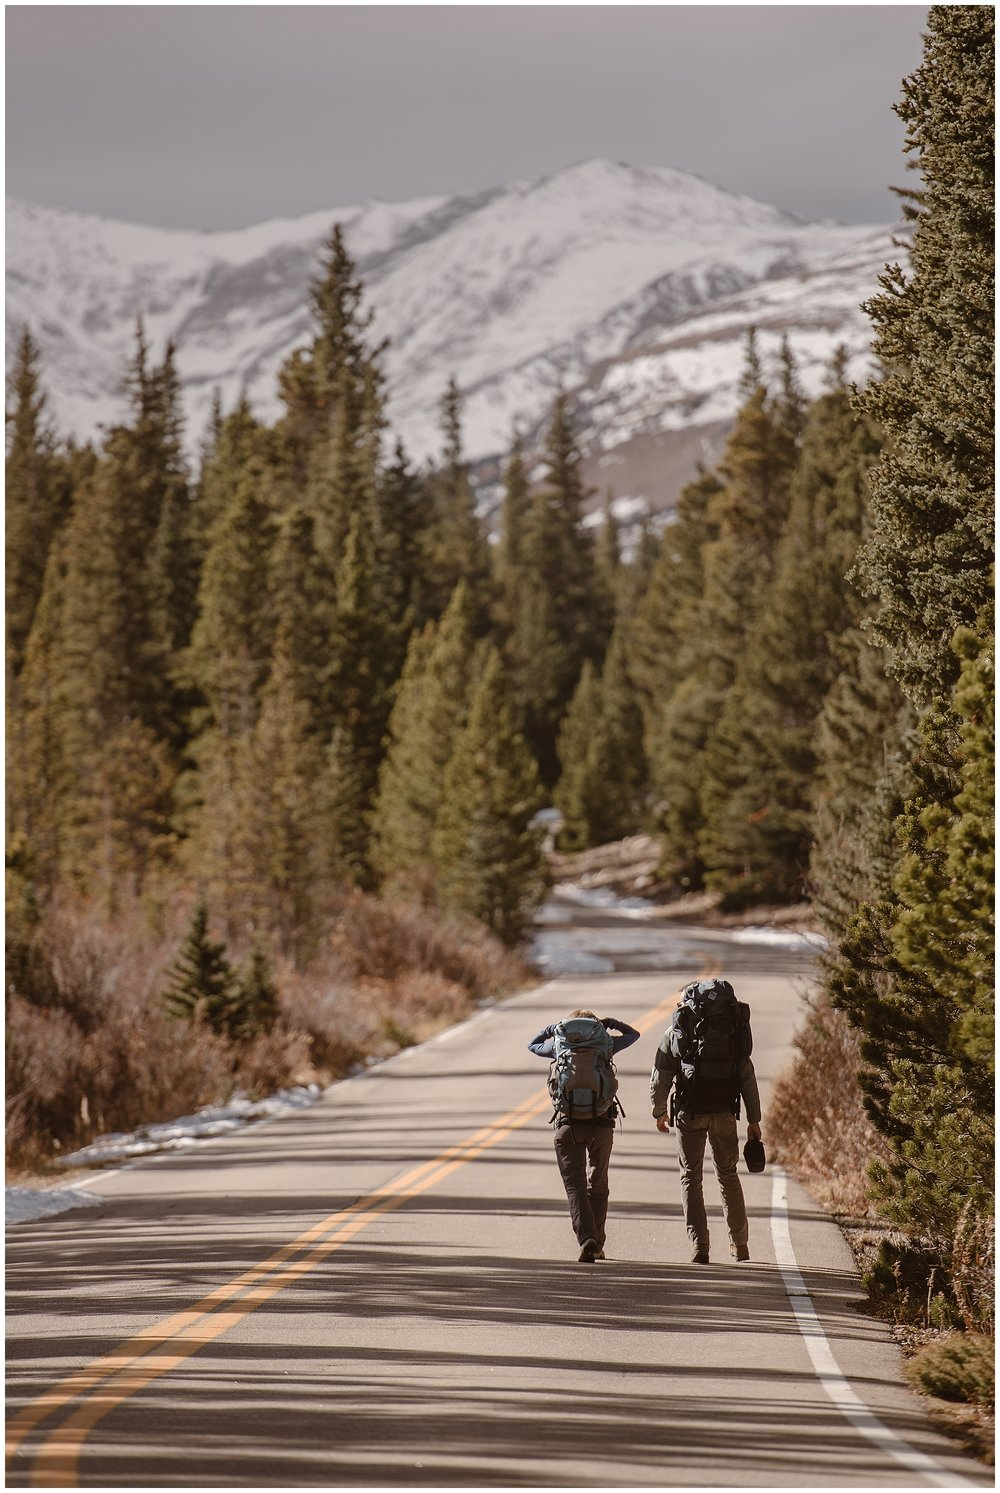 You can hike on your elopement wedding day! Bring all your gear and plan to carry your wedding day outfits. Where you elope and how you say your vows matters! Photo by Maddie Mae, Adventure Instead Elopement Photographers.